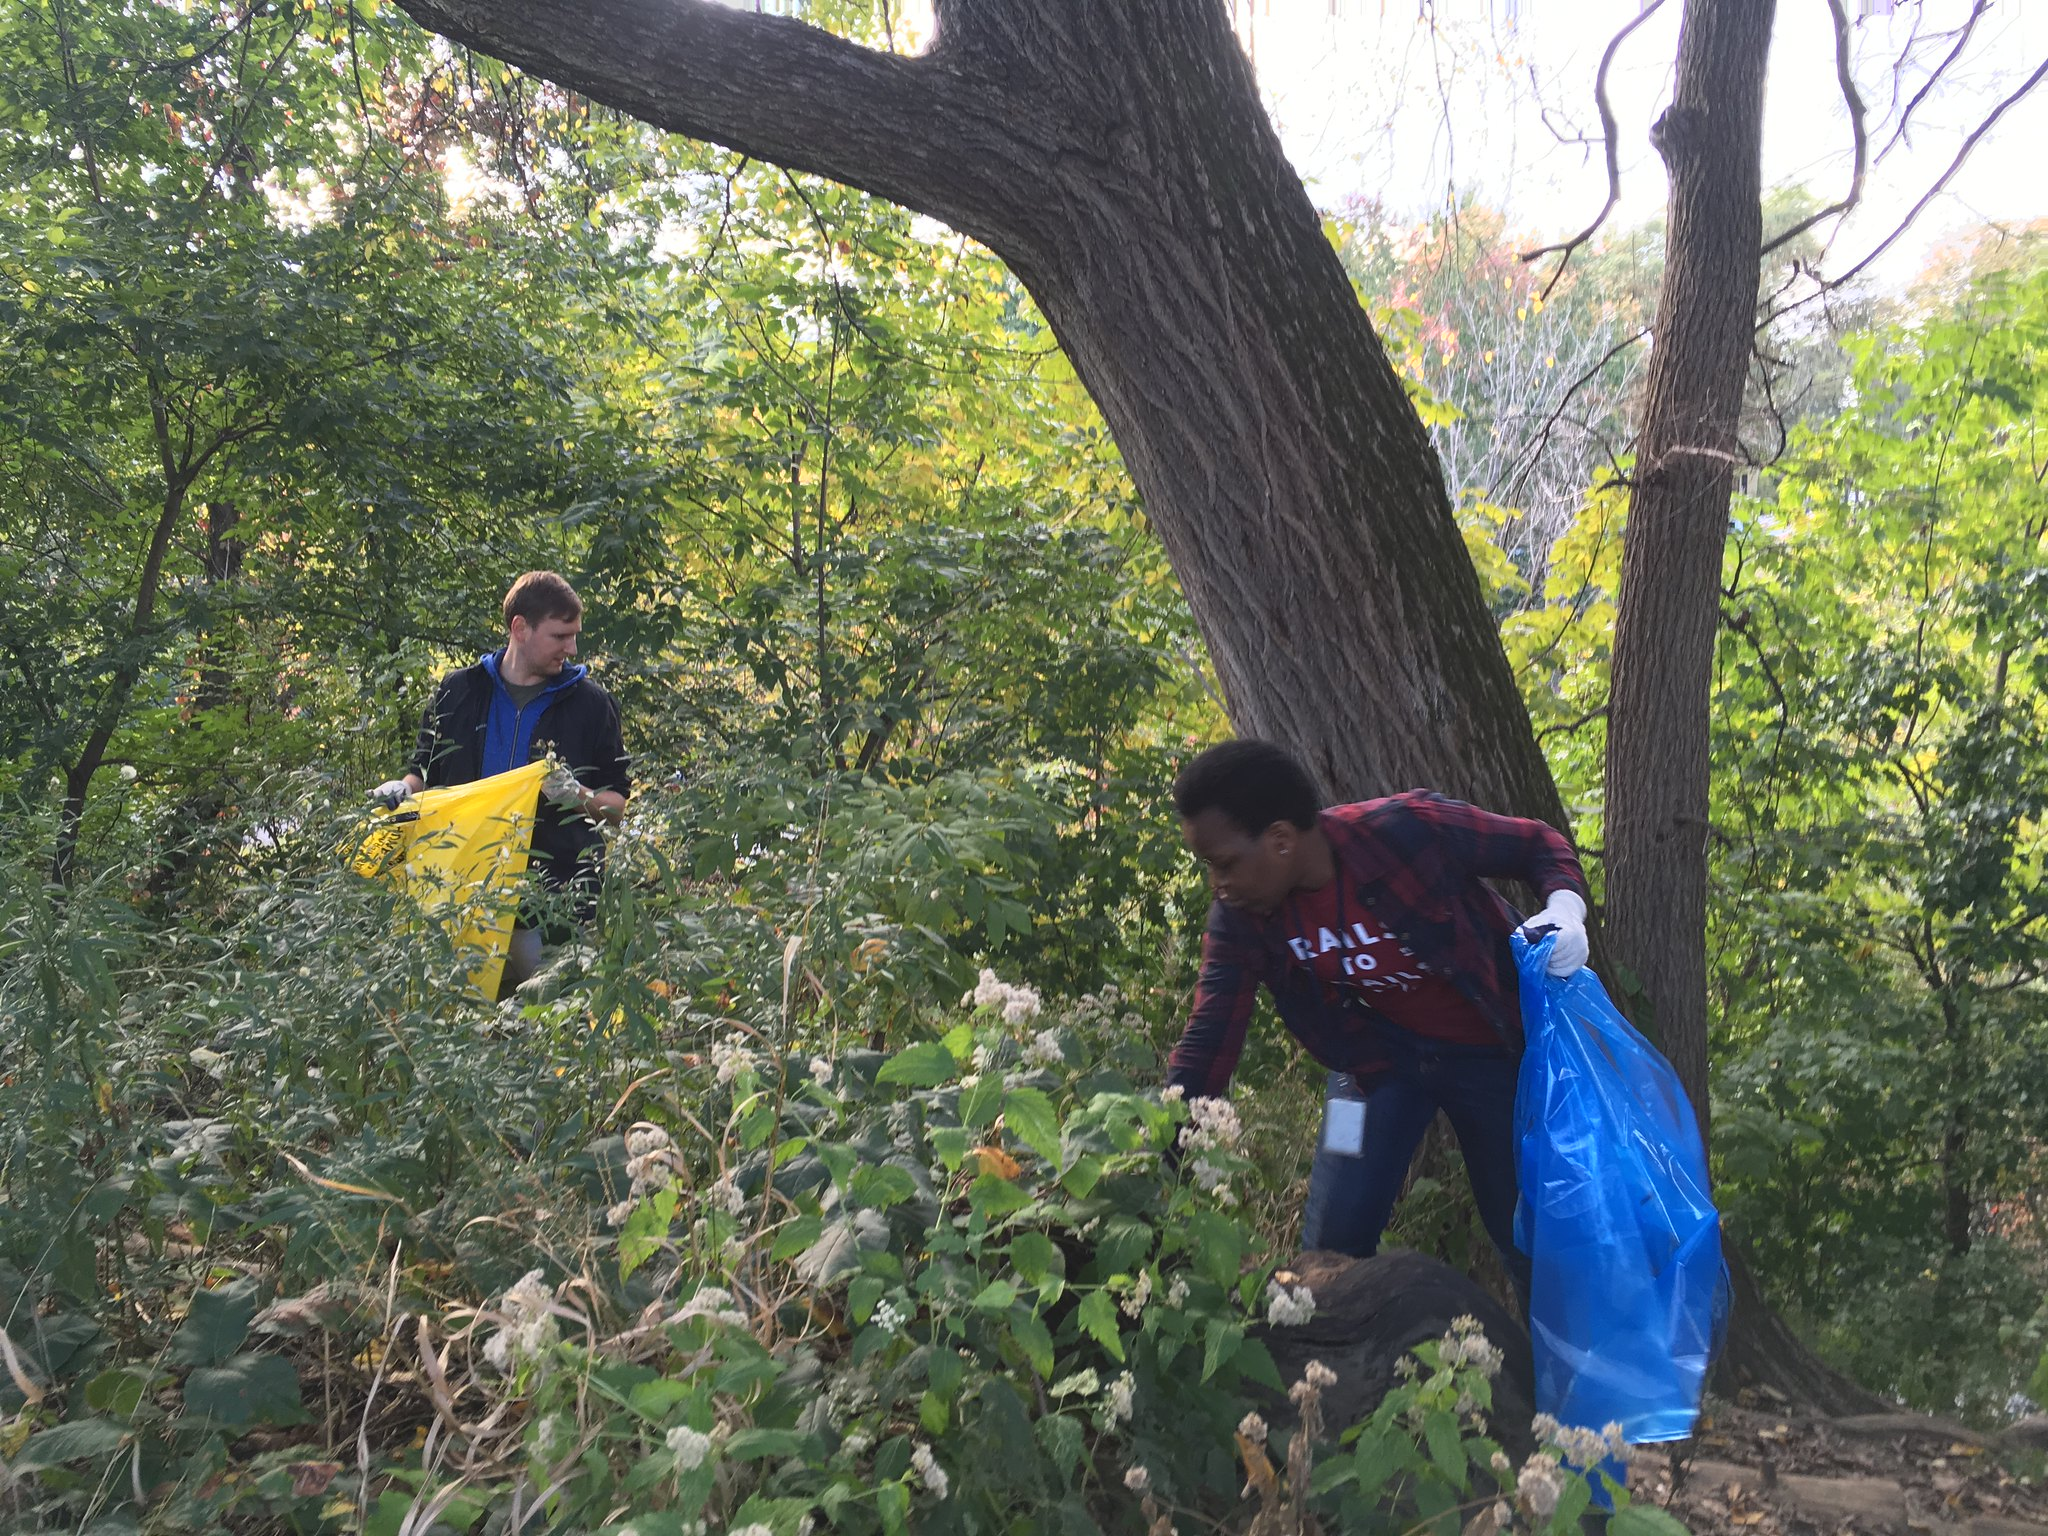 Team RTC cleaning up a section of the Rock Creek Park Trails in Washington, D.C., during Make A Difference Day 2017 | Courtesy Rails-to-Trails Conservancy